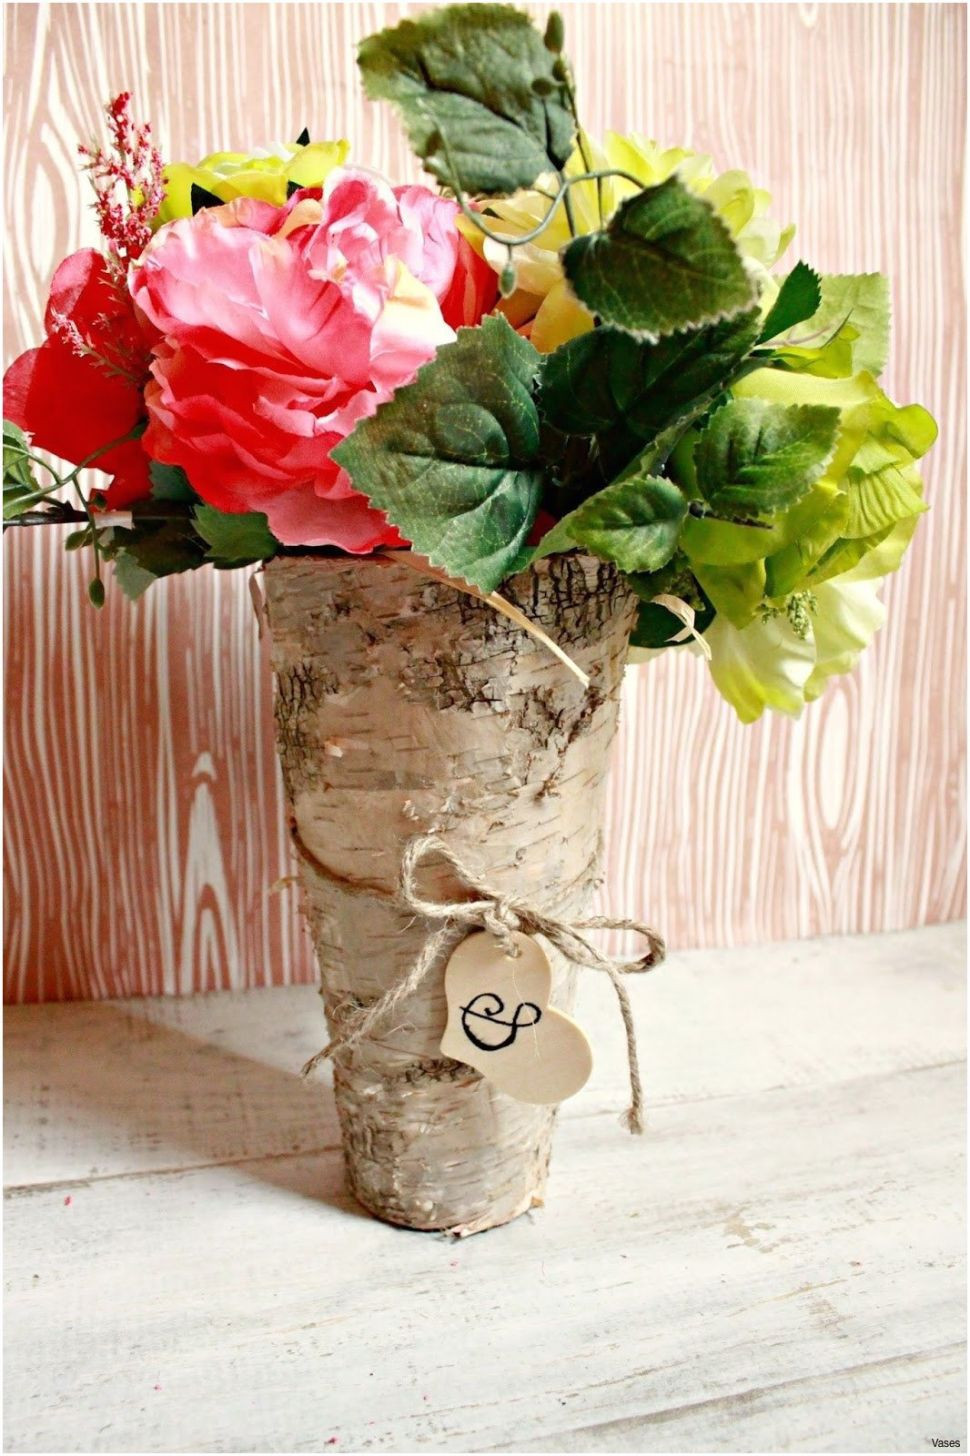 ice cream stick flower vase of 10 awesome small flower vase online bogekompresorturkiye com intended for silk flower depot outstanding silk flower depot flower arrangements elegant floral arrangements 0d 1066 99